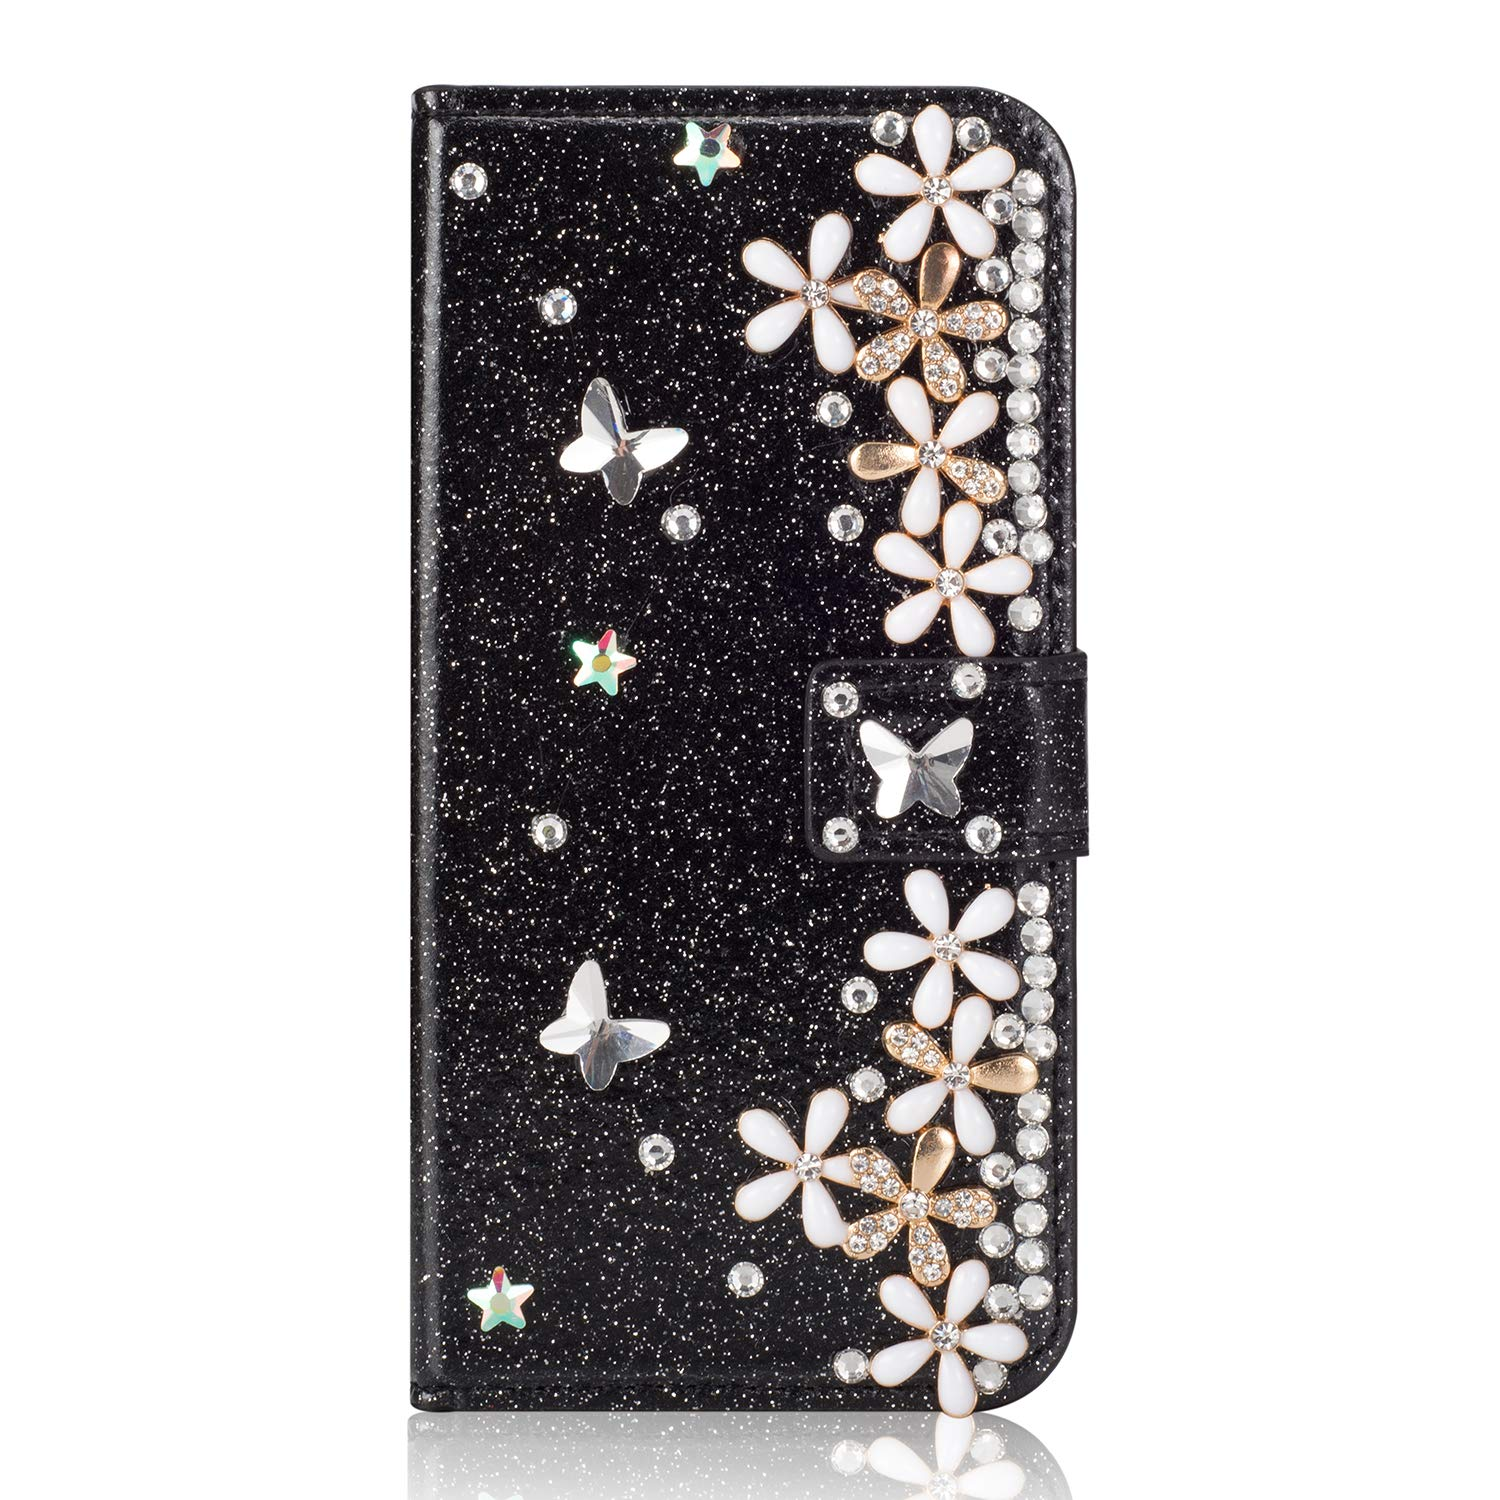 Vistore Diamond Butterfly Flower Case for Huawei P30 Pro,3D Crystal Floral Flip Cover for Huawei P30 Pro,Women Girls Anti-Drop Stand PU Leather Case with Soft Silicone - Rose Gold